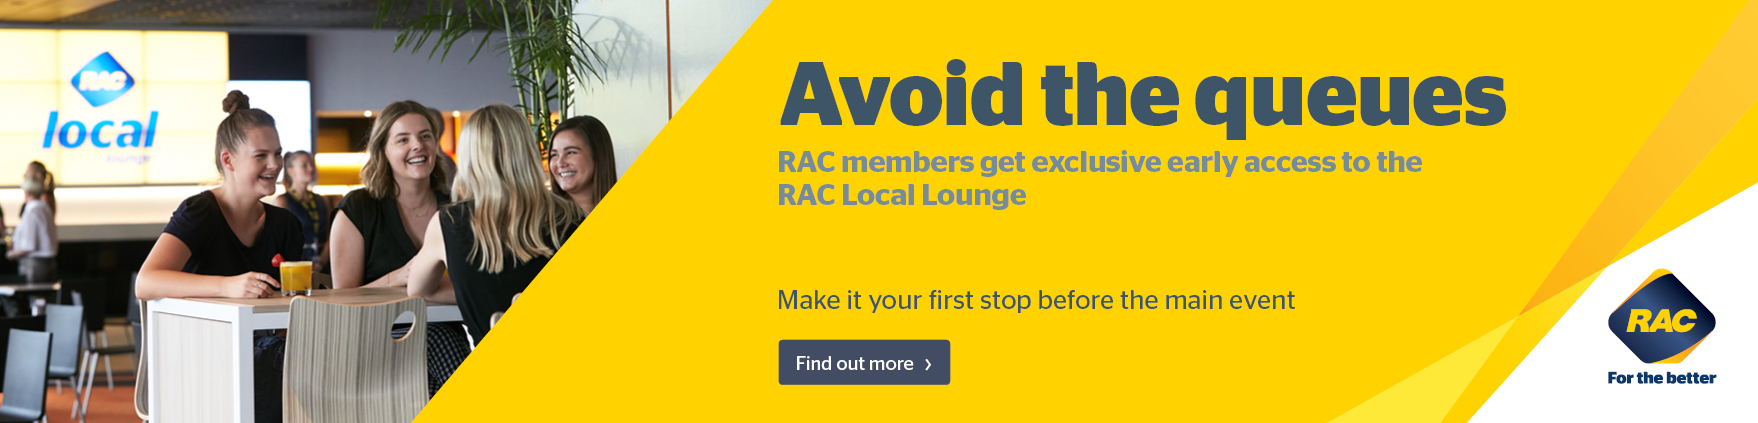 Avoid the Queues Banner thanks to RAC, giving members earlty